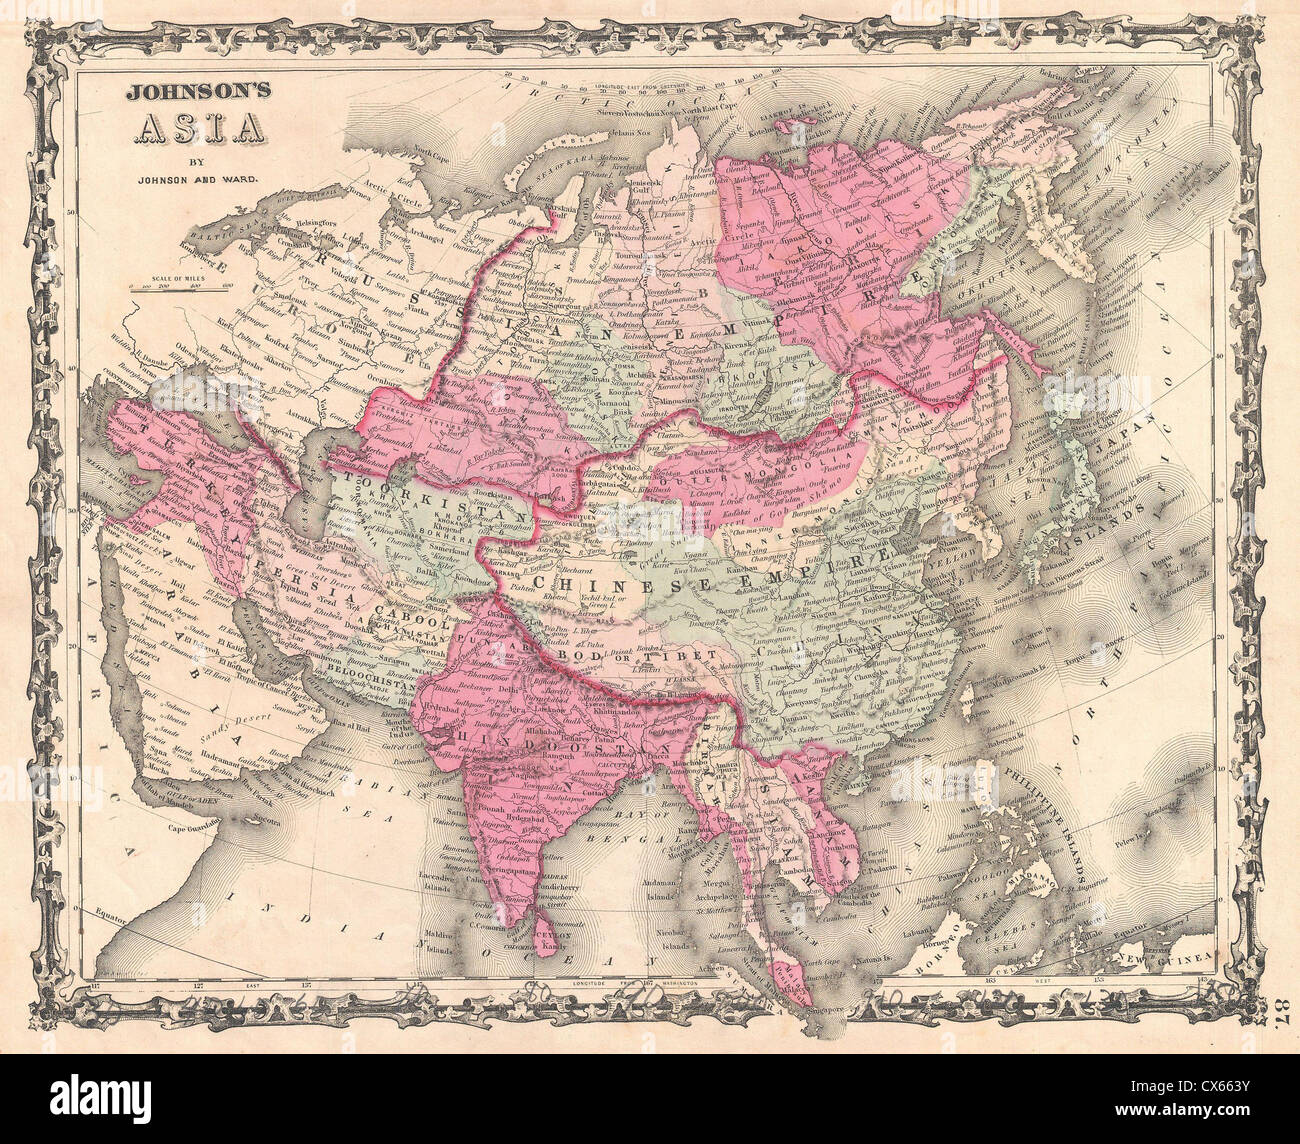 1862 Johnson Map of Asia - Stock Image